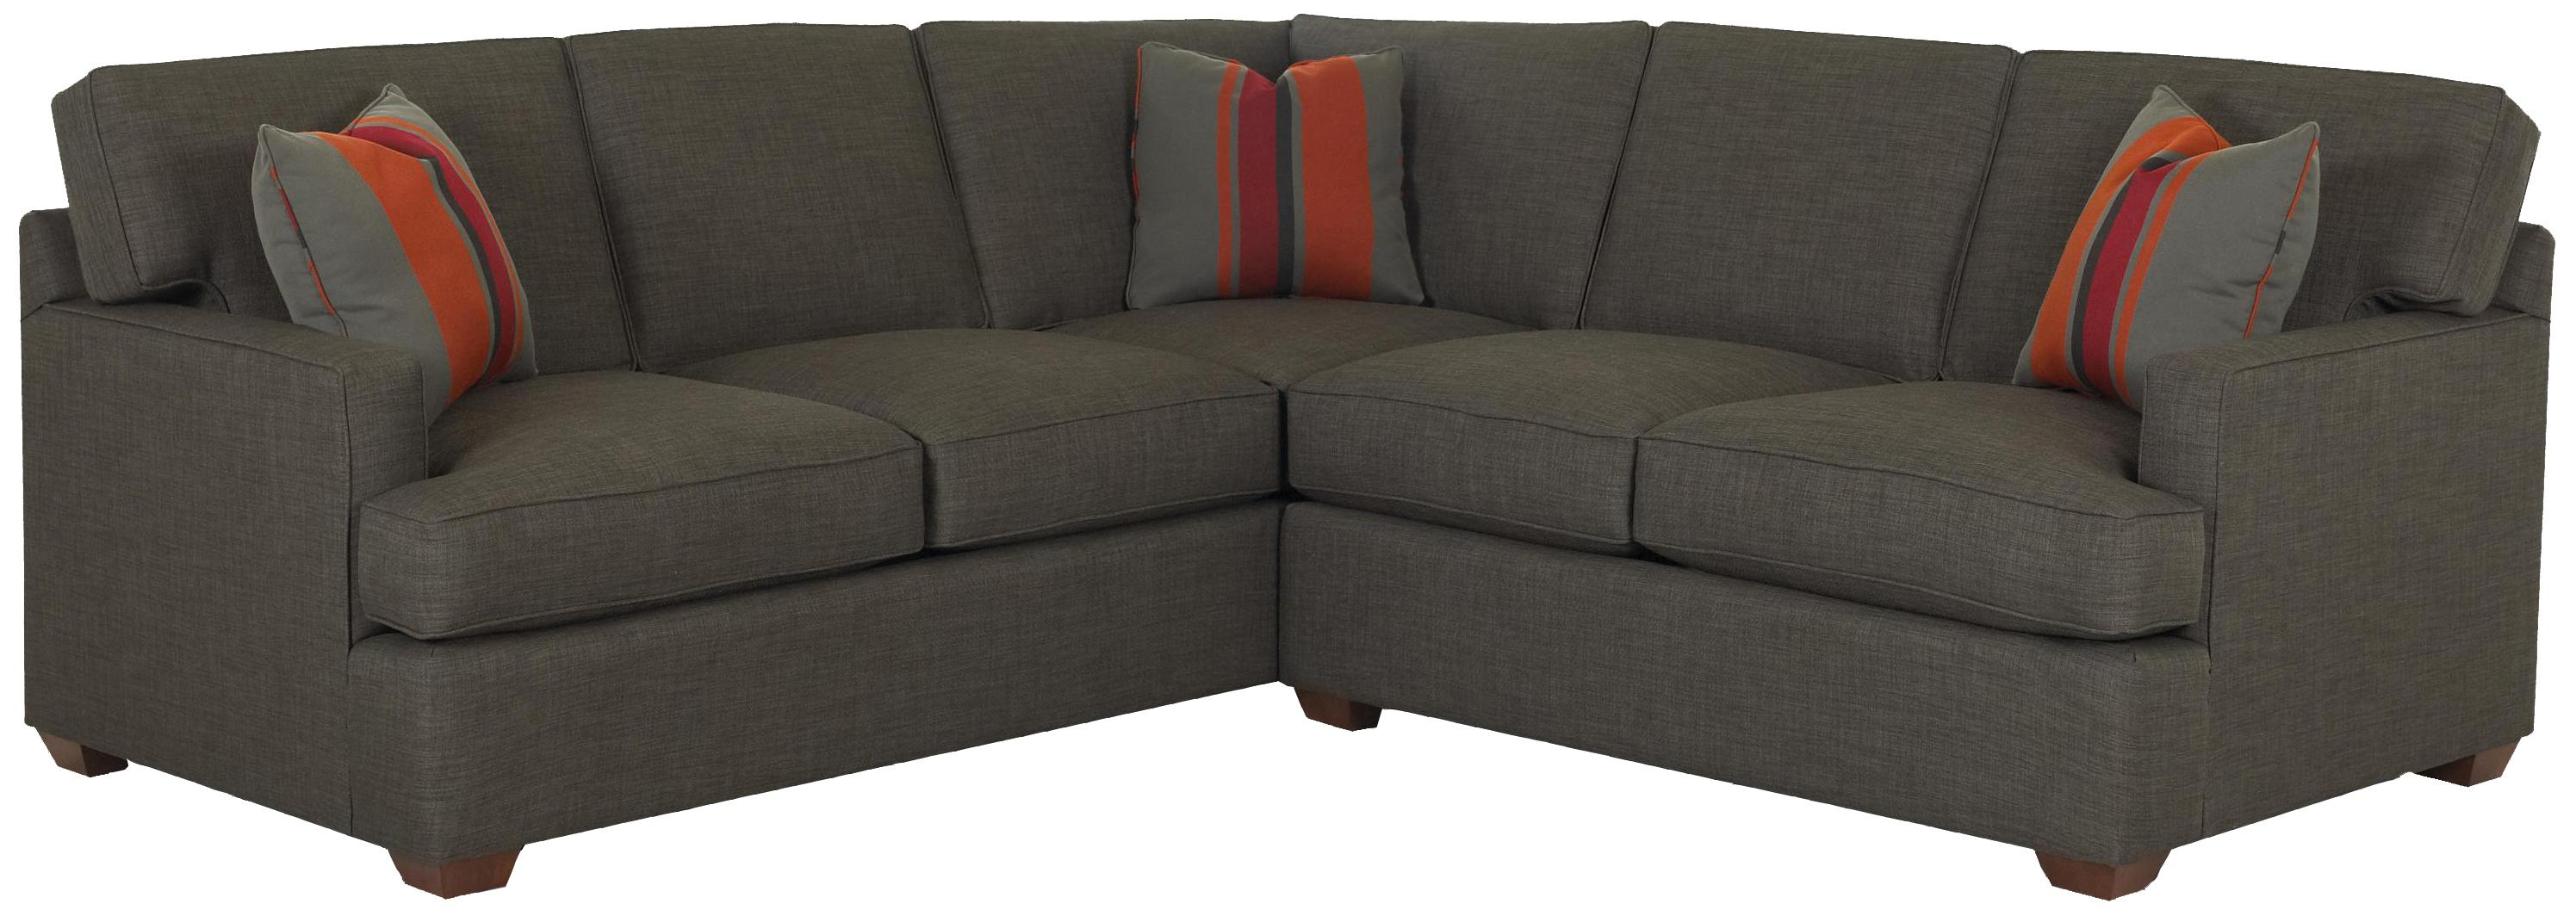 Loomis 2 Piece Sectional by Klaussner at Johnny Janosik